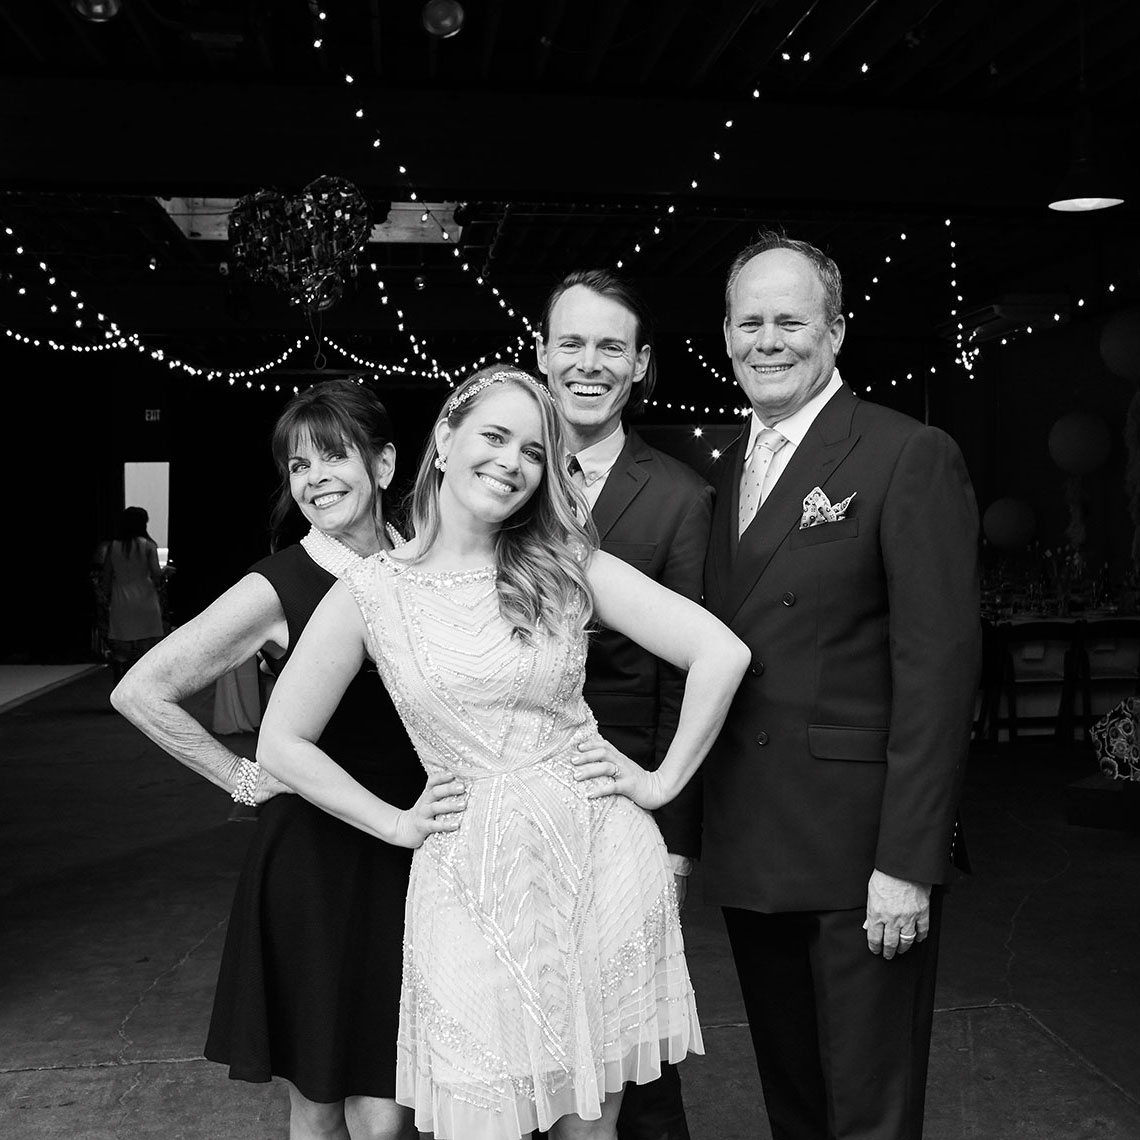 20160326_StockWedding_02159B